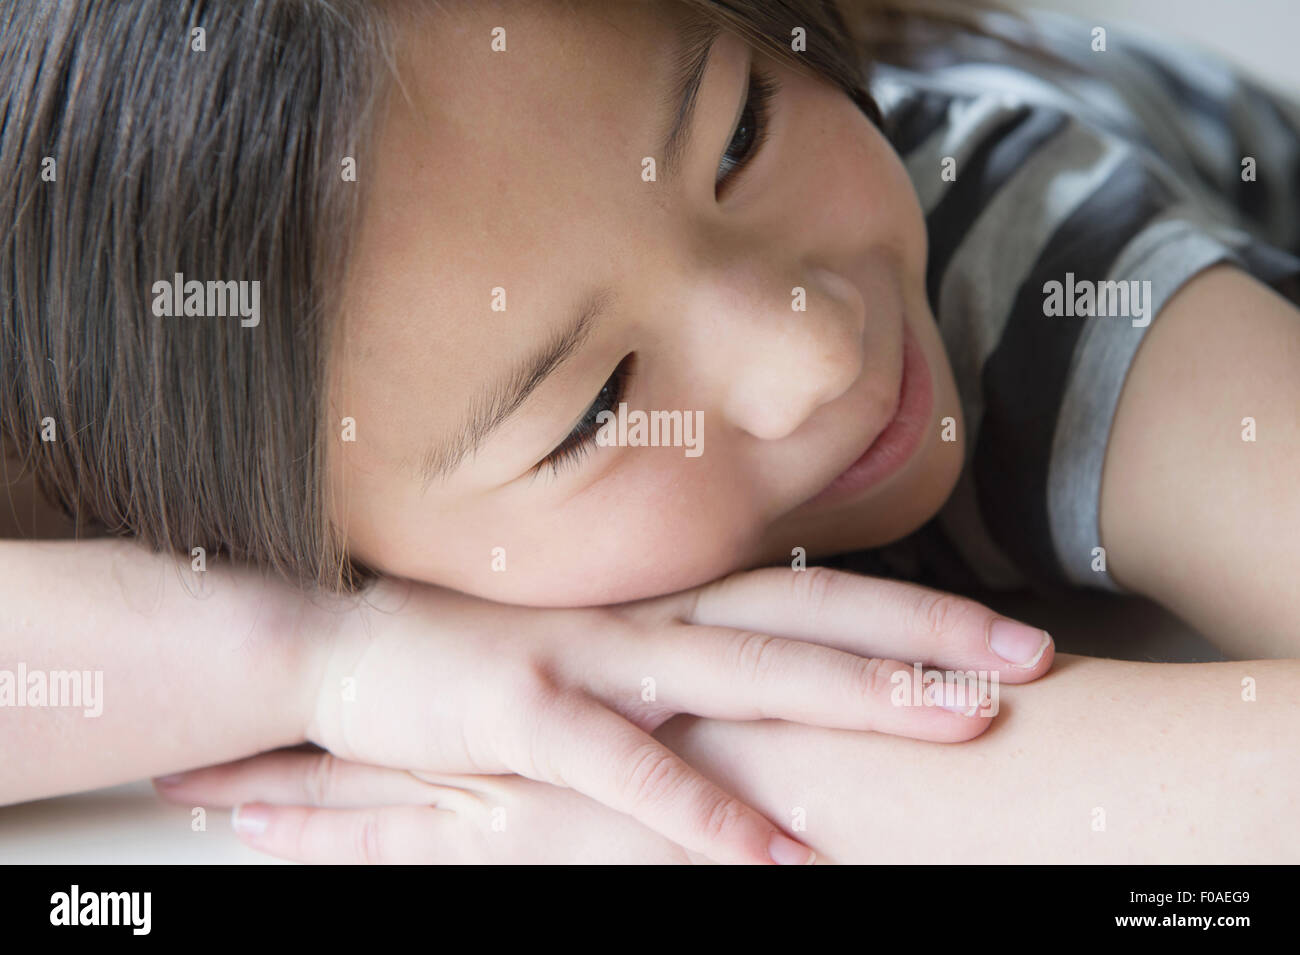 Close up of girl resting on hands - Stock Image